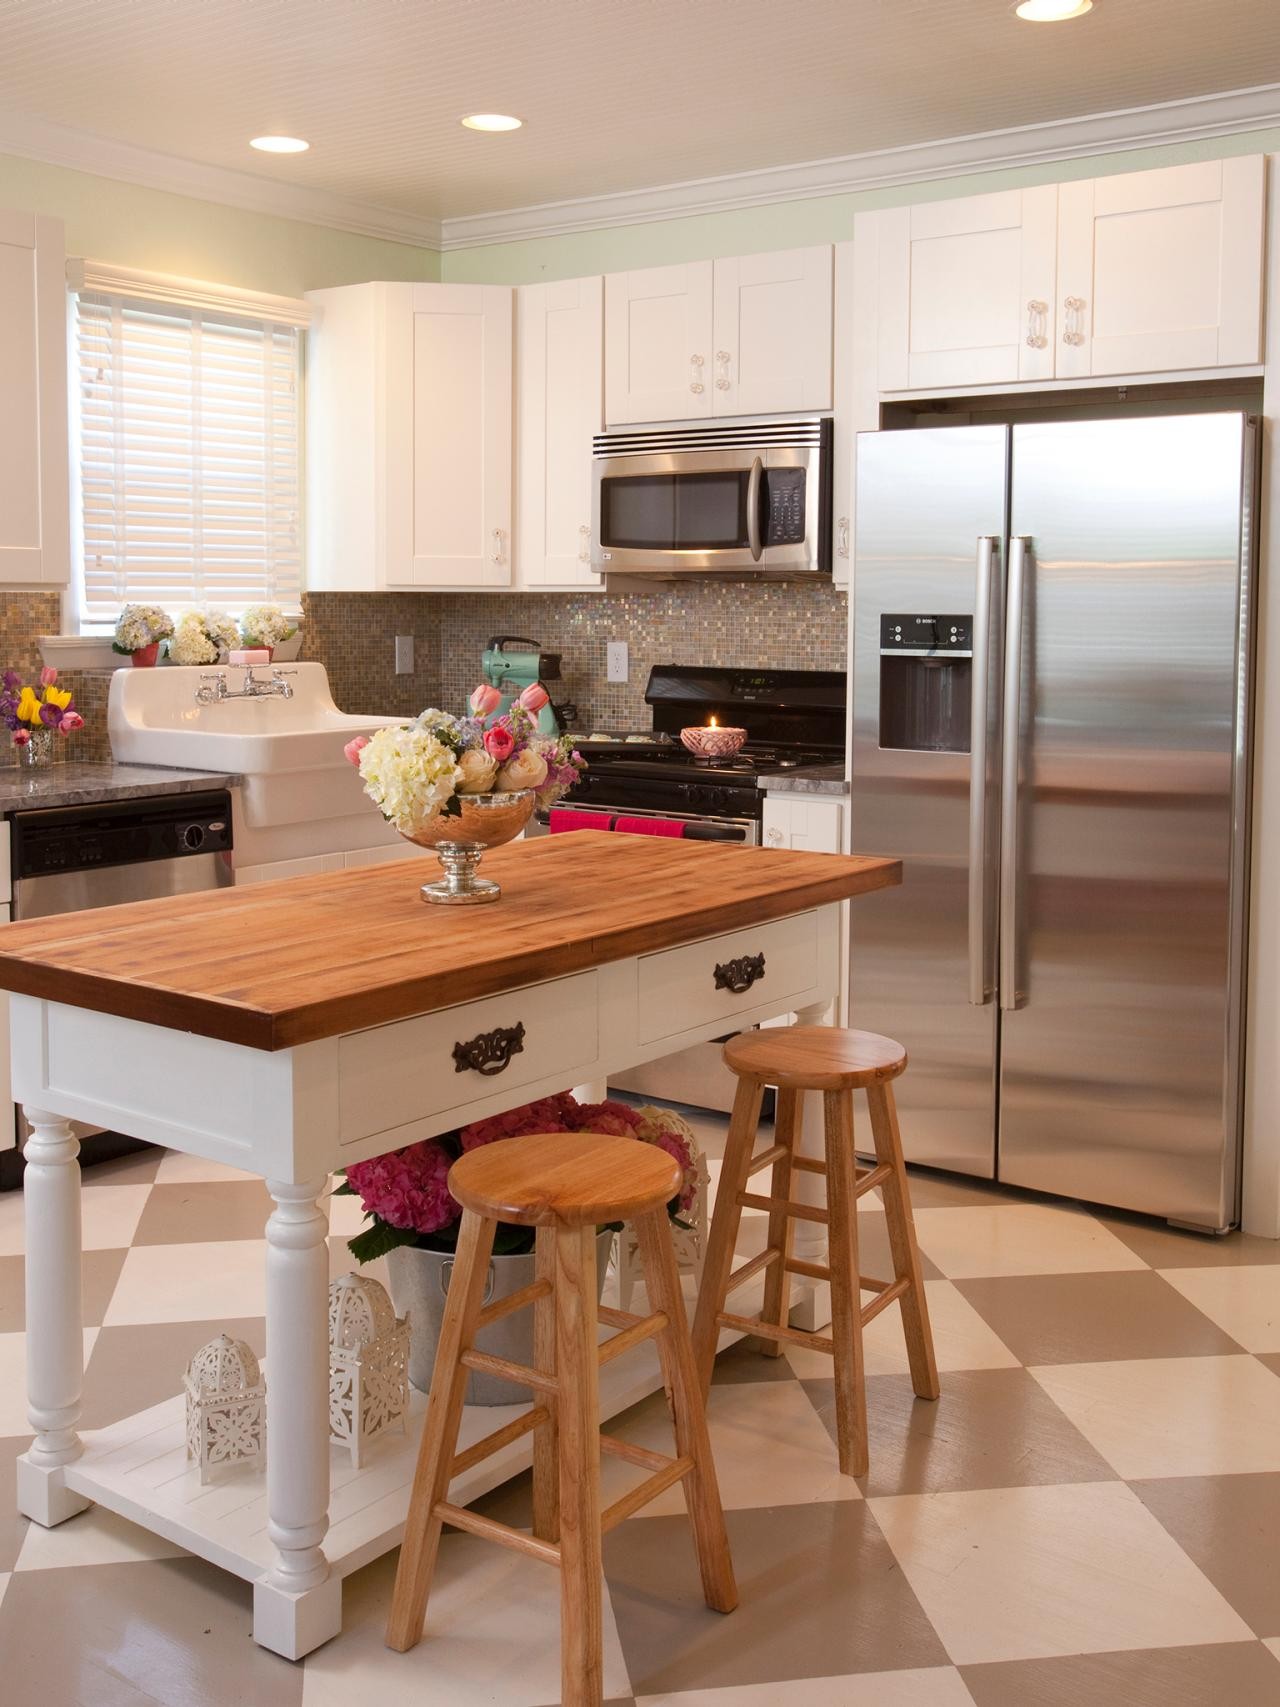 Small Kitchen Design Ideas & Tips From HGTV